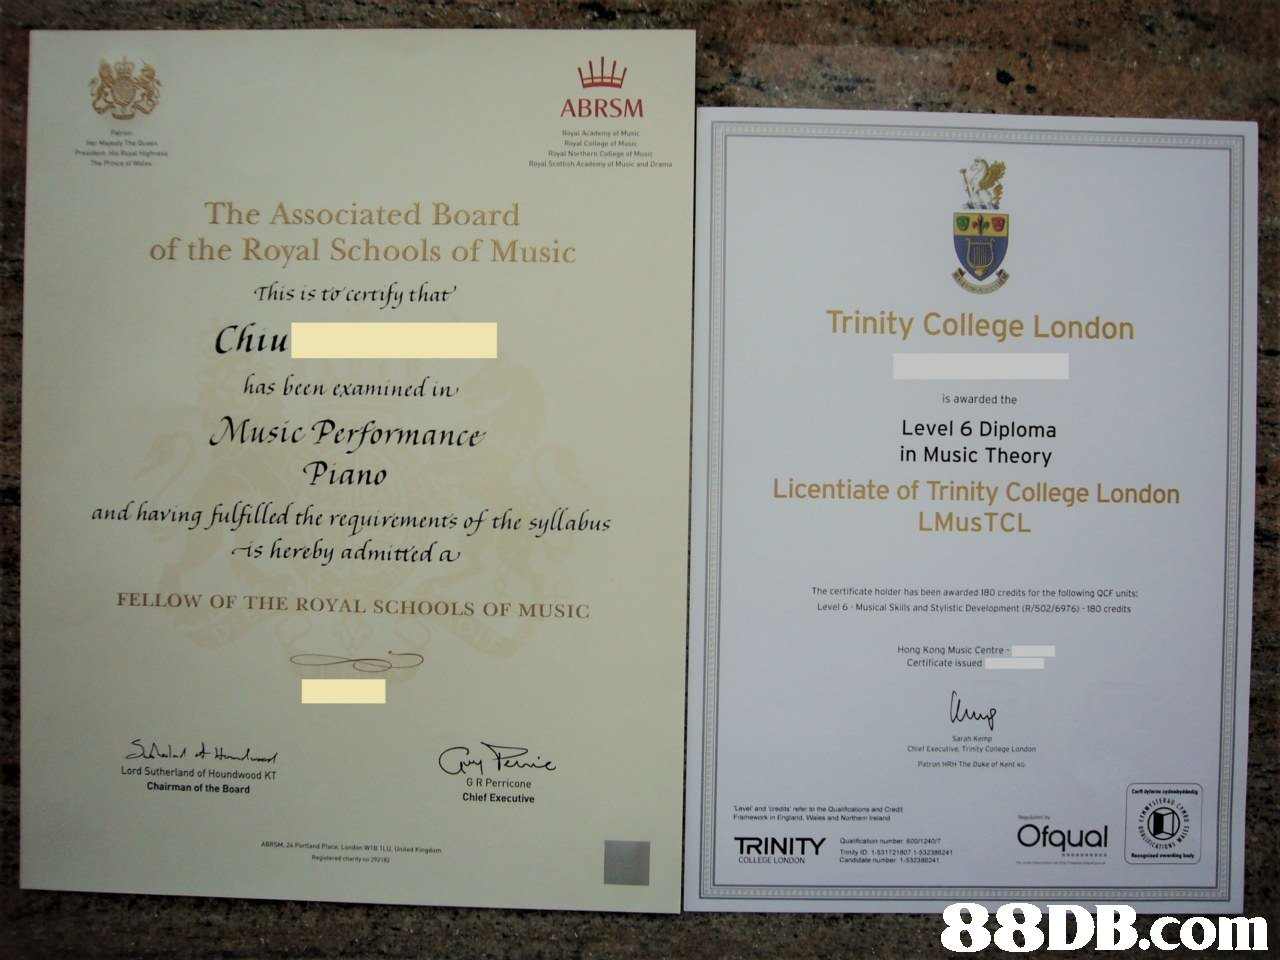 "ABRSM layal Academy of Music Reyal College of Music Royal Northern College of Music Royal Scettlish Academy of Music and Drama The Associated Board of the Royal Schools of Music This is t0""certify that' 疆凋 Trinity College London Chiu 1114 has been cxamined in is awarded the Music Performance Level 6 Diploma in Music Theory Licentiate of Trinity College London LMusTCL Piano and having fulfilled the requirements of the syllabus -is hereby admittid a FELLOW OF THE ROYAL SCHOOLS OF MUSIC The certificate holder has been awarded 180 credits for the following QCF units: Level 6 Musical Skills and Stylistic Development (R/502/6976)-180 credits Hong Kong Music Centre Certificate issued Sarah Kemp Chiet Executive Trinty College Landon Patron The Duke o! Kent KG Lord Sutherland of Houndwood KT Chairman of the Board G R Perricone Chief Executive Level and ered ts、refer to the Quatatons and Credit Framework in England, Wales and Northem reland Ofqual ADRSM·26 Portland Place, LMdse, w1B 1L text"